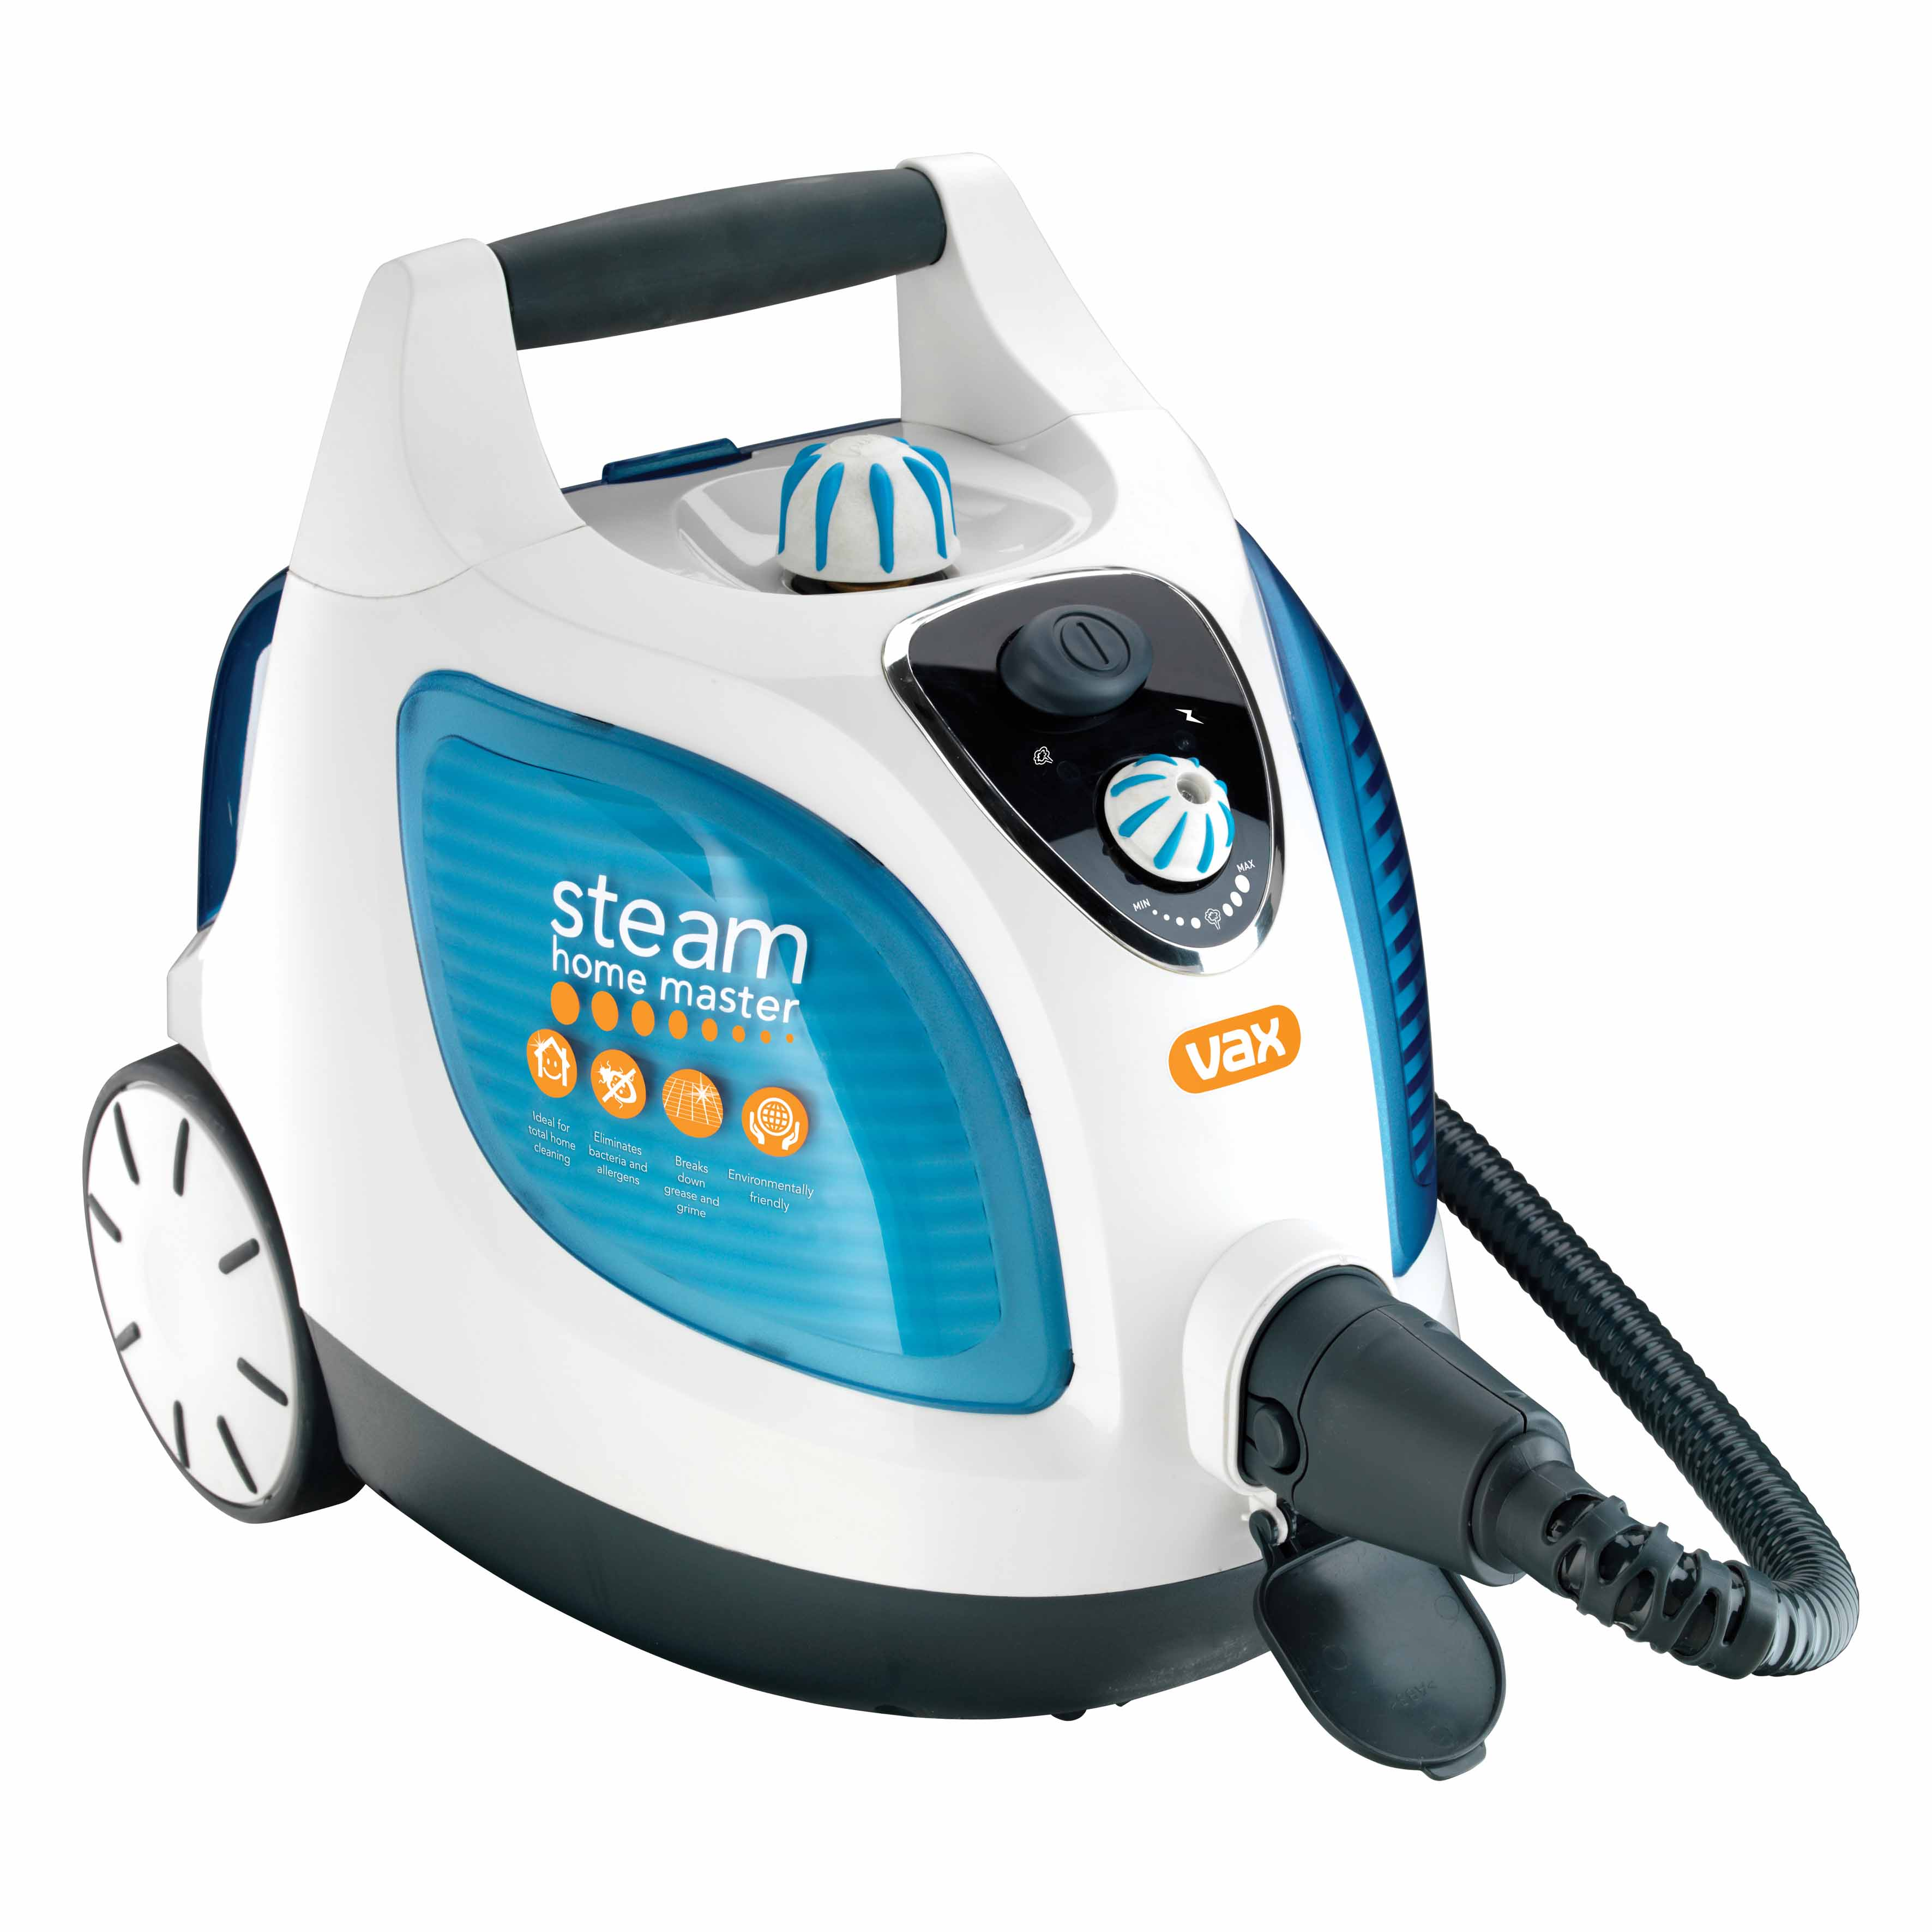 VAX S6 HOME MASTER STEAM CLEANER 1600W UPHOLSTERY WINDOWS